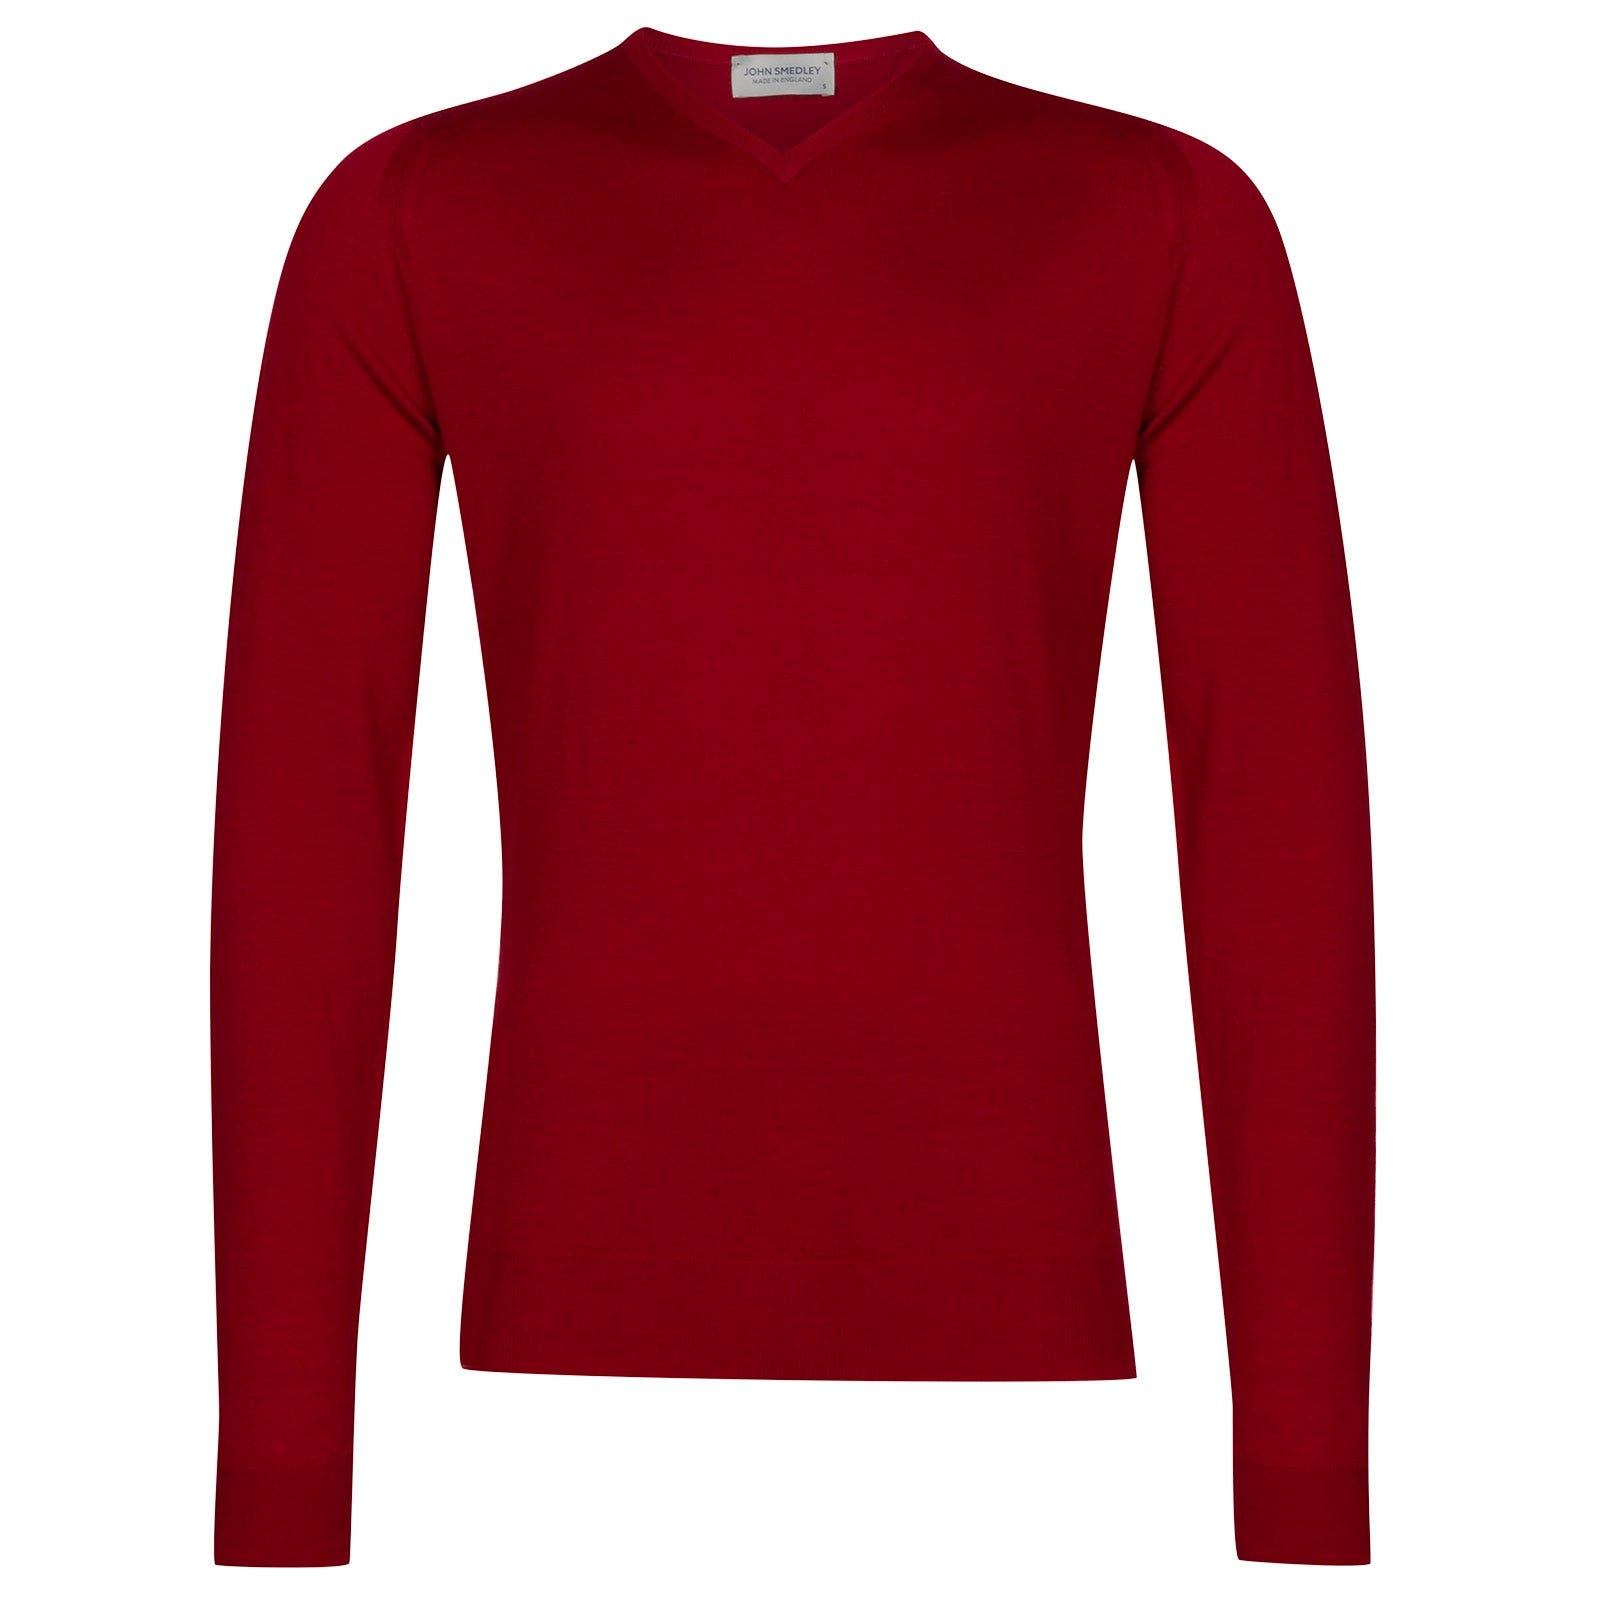 John Smedley shipton Merino Wool Pullover in Crimson Forest-S